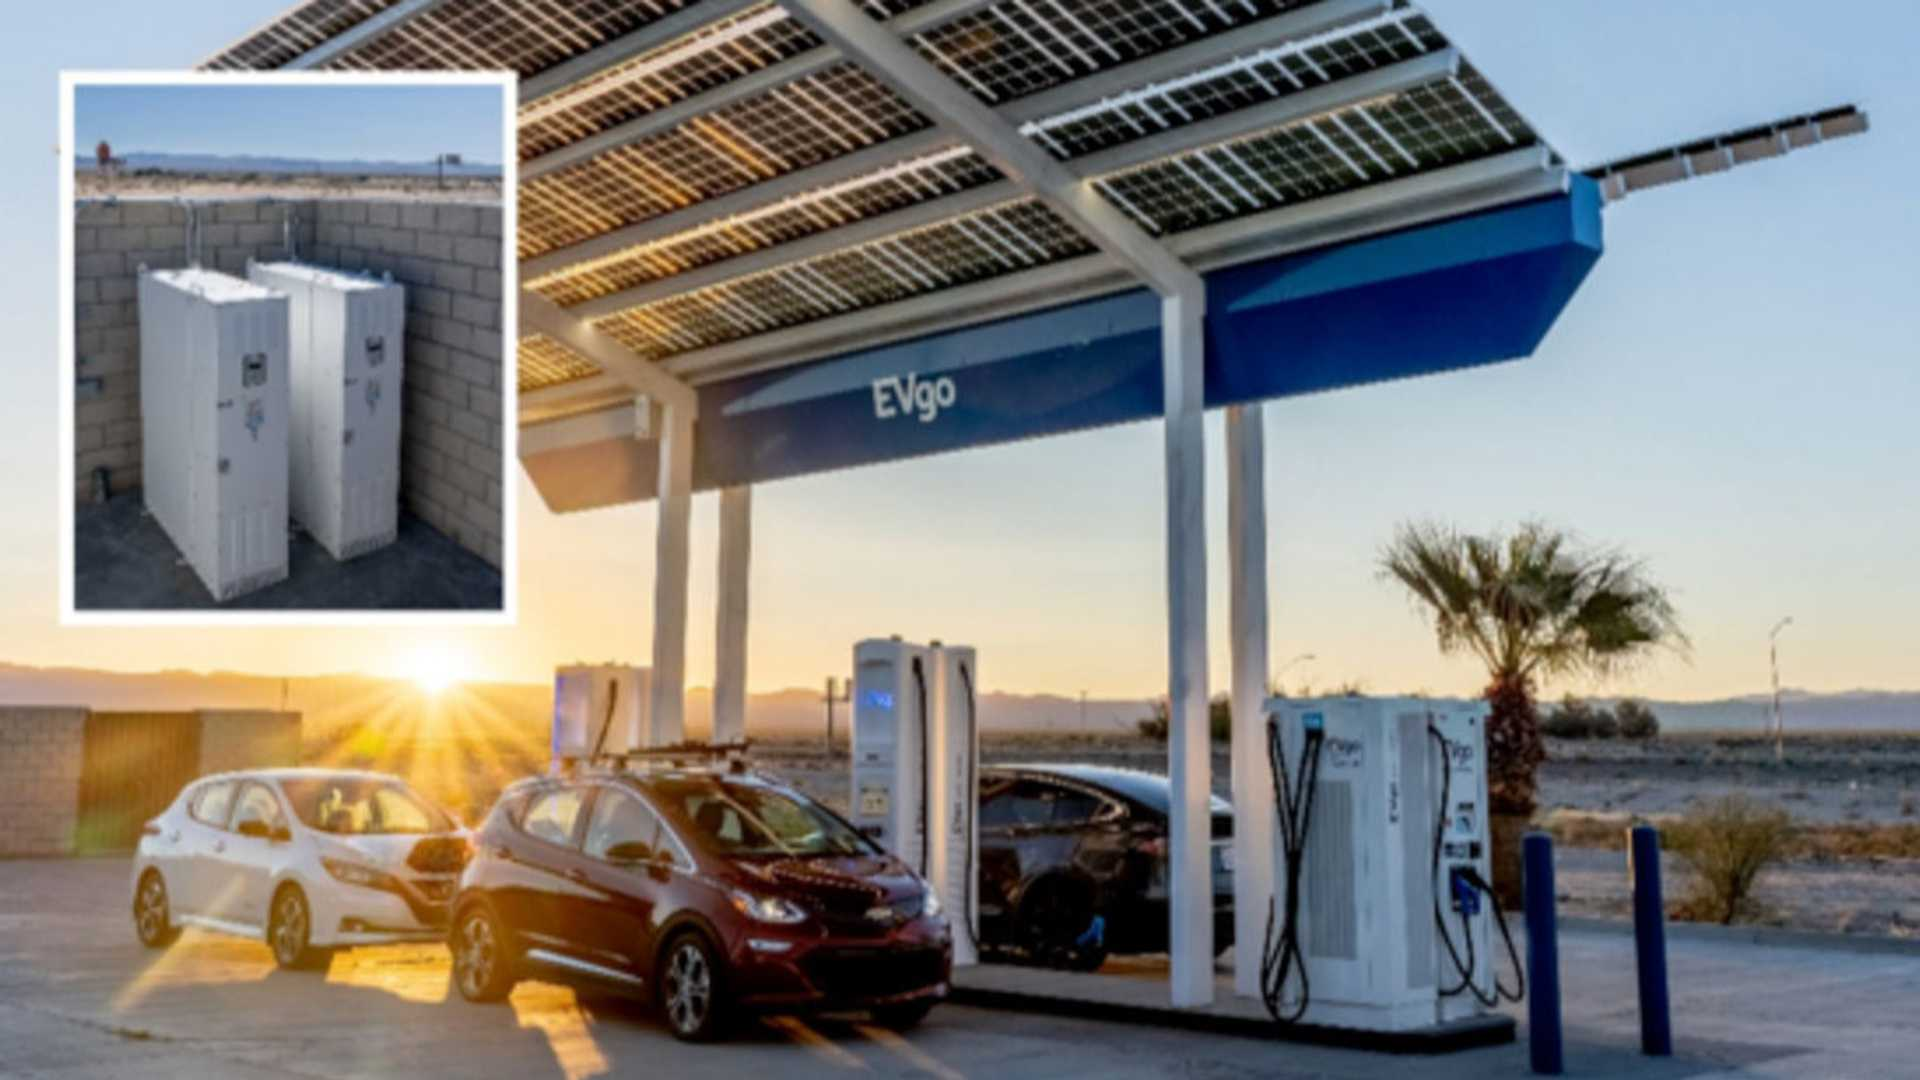 EVgo: 14 ESS Installed Or Under Construction At Charging Stations